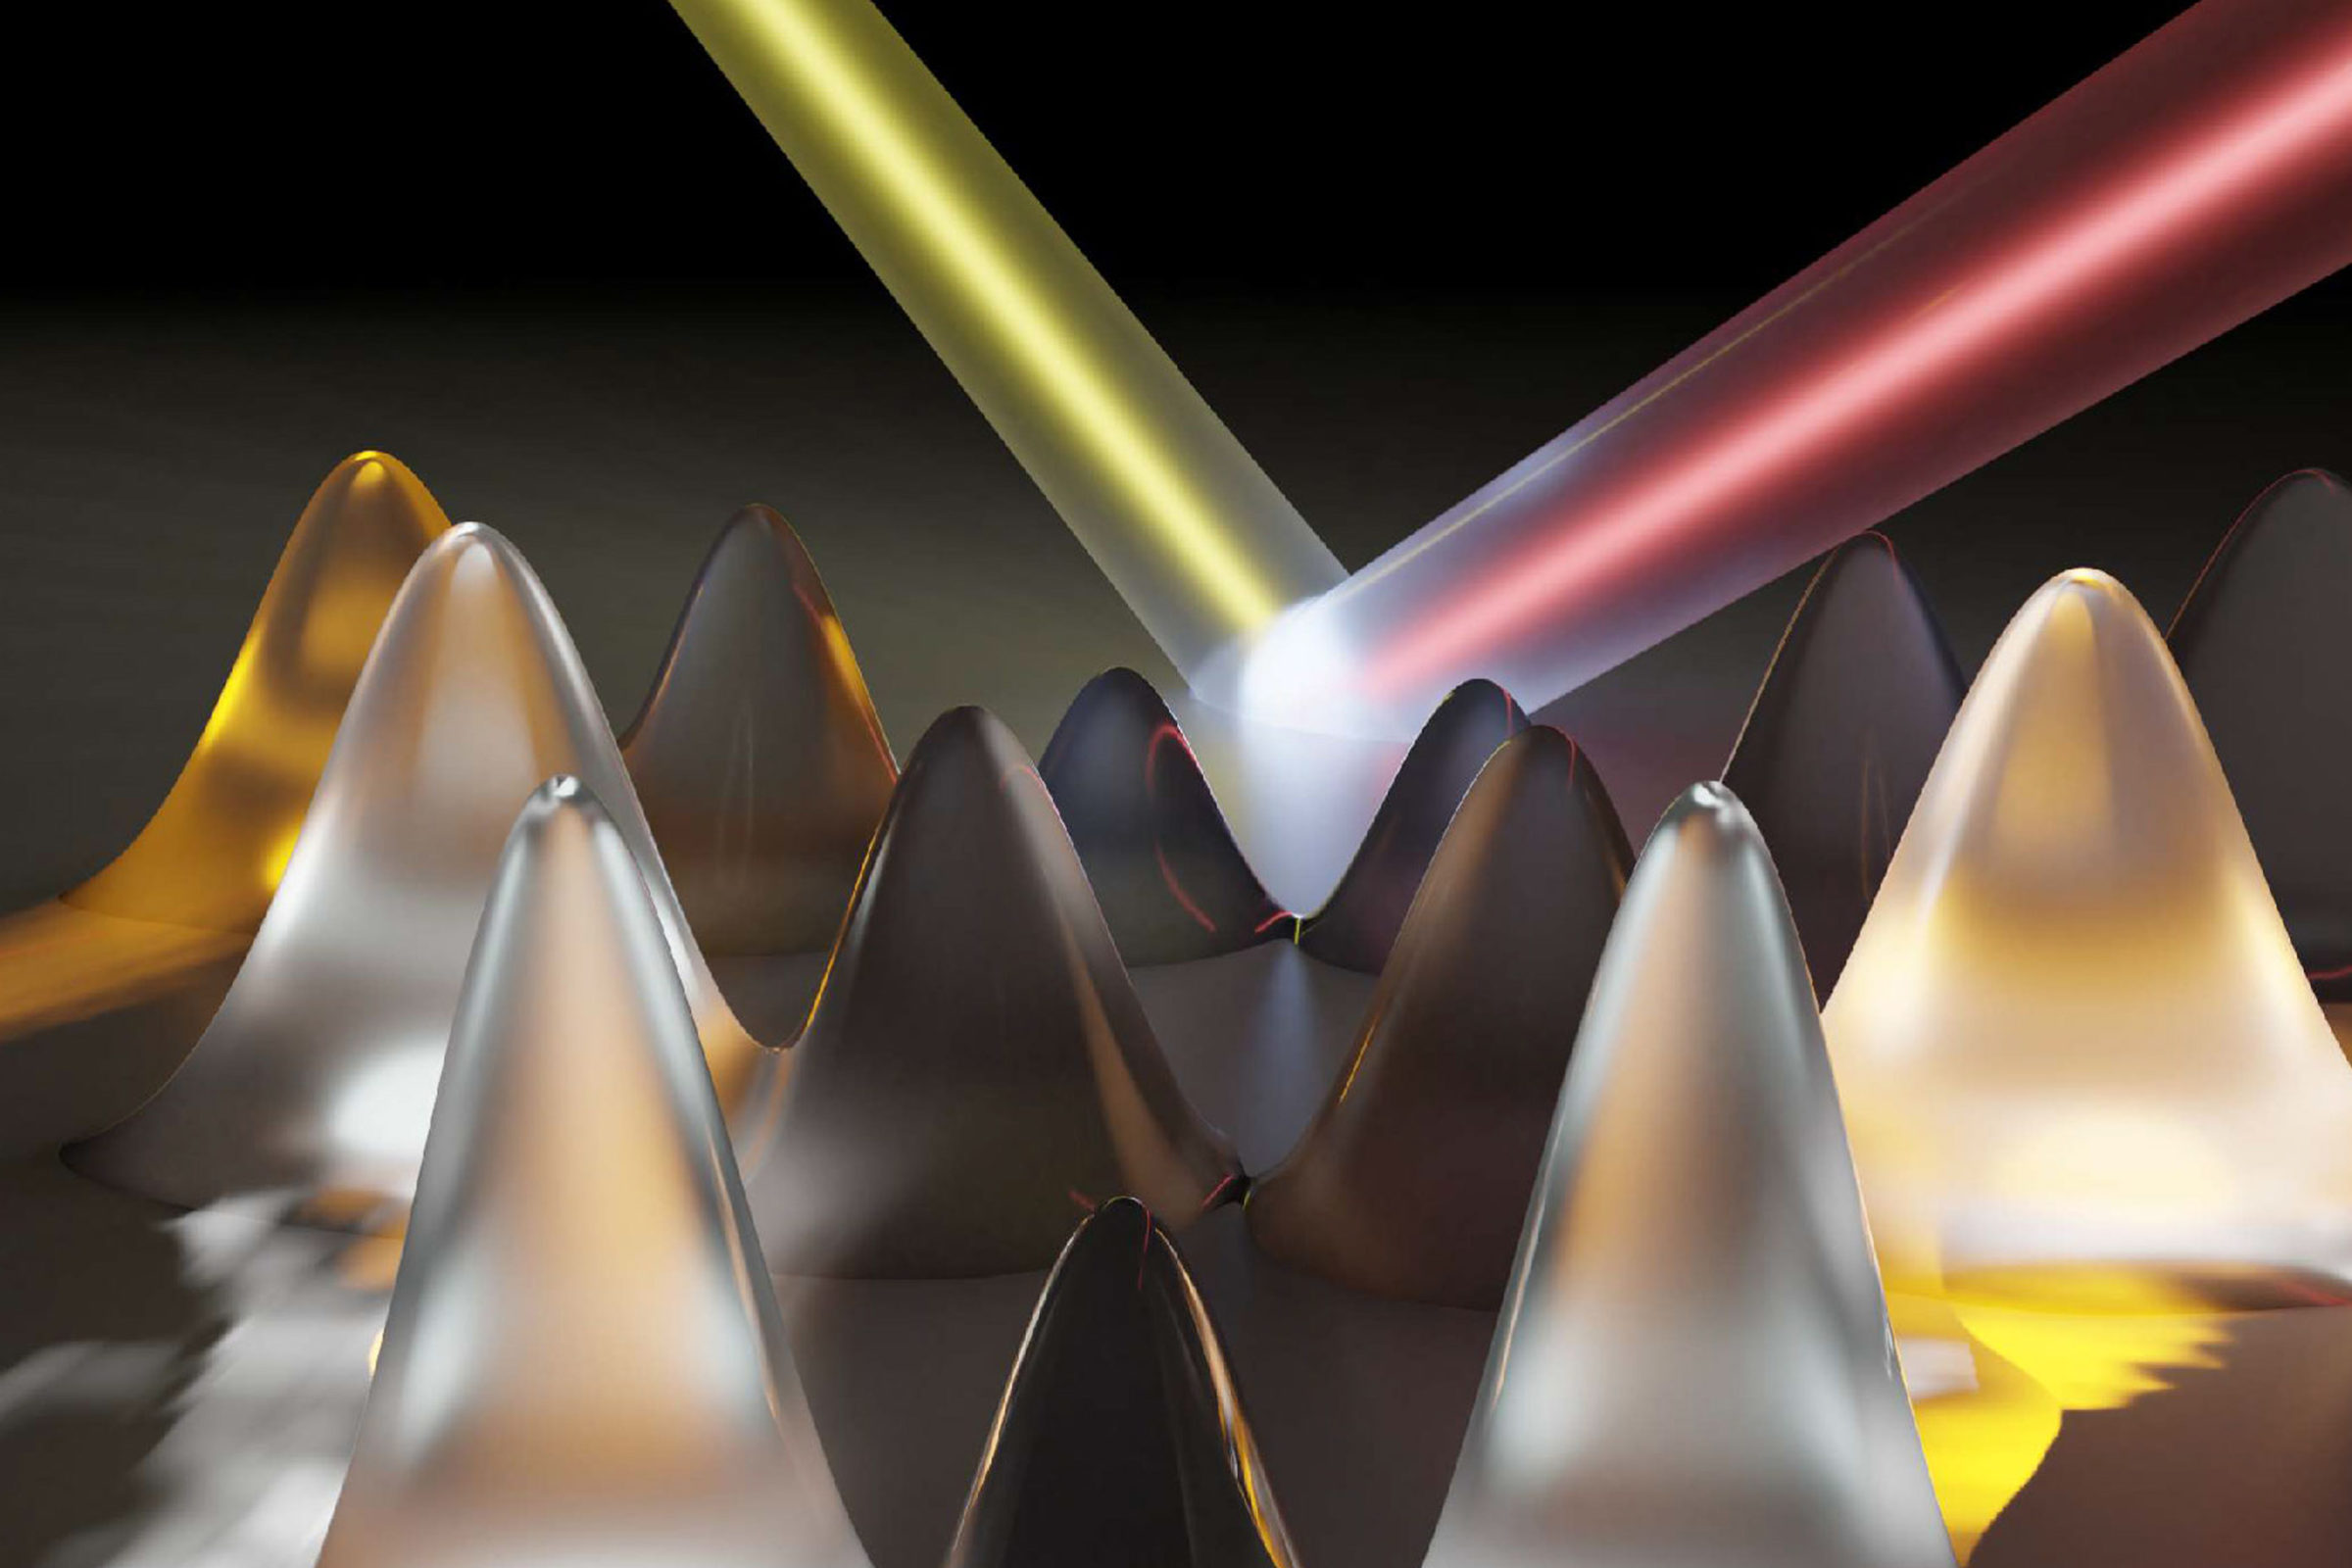 "The electrons absorb laser light and set up ""momentum combs"" (the hills) spanning the energy valleys within the material (the red line). When the electrons have an energy allowed by the quantum mechanical structure of the material—and also touch the edge of the valley—they emit light. This is why some teeth of the combs are bright and some are dark. By measuring the emitted light and precisely locating its source, the research mapped out the energy valleys in a 2D crystal of tungsten diselenide. Credit: Markus Borsch, Quantum Science Theory Lab, University of Michigan."